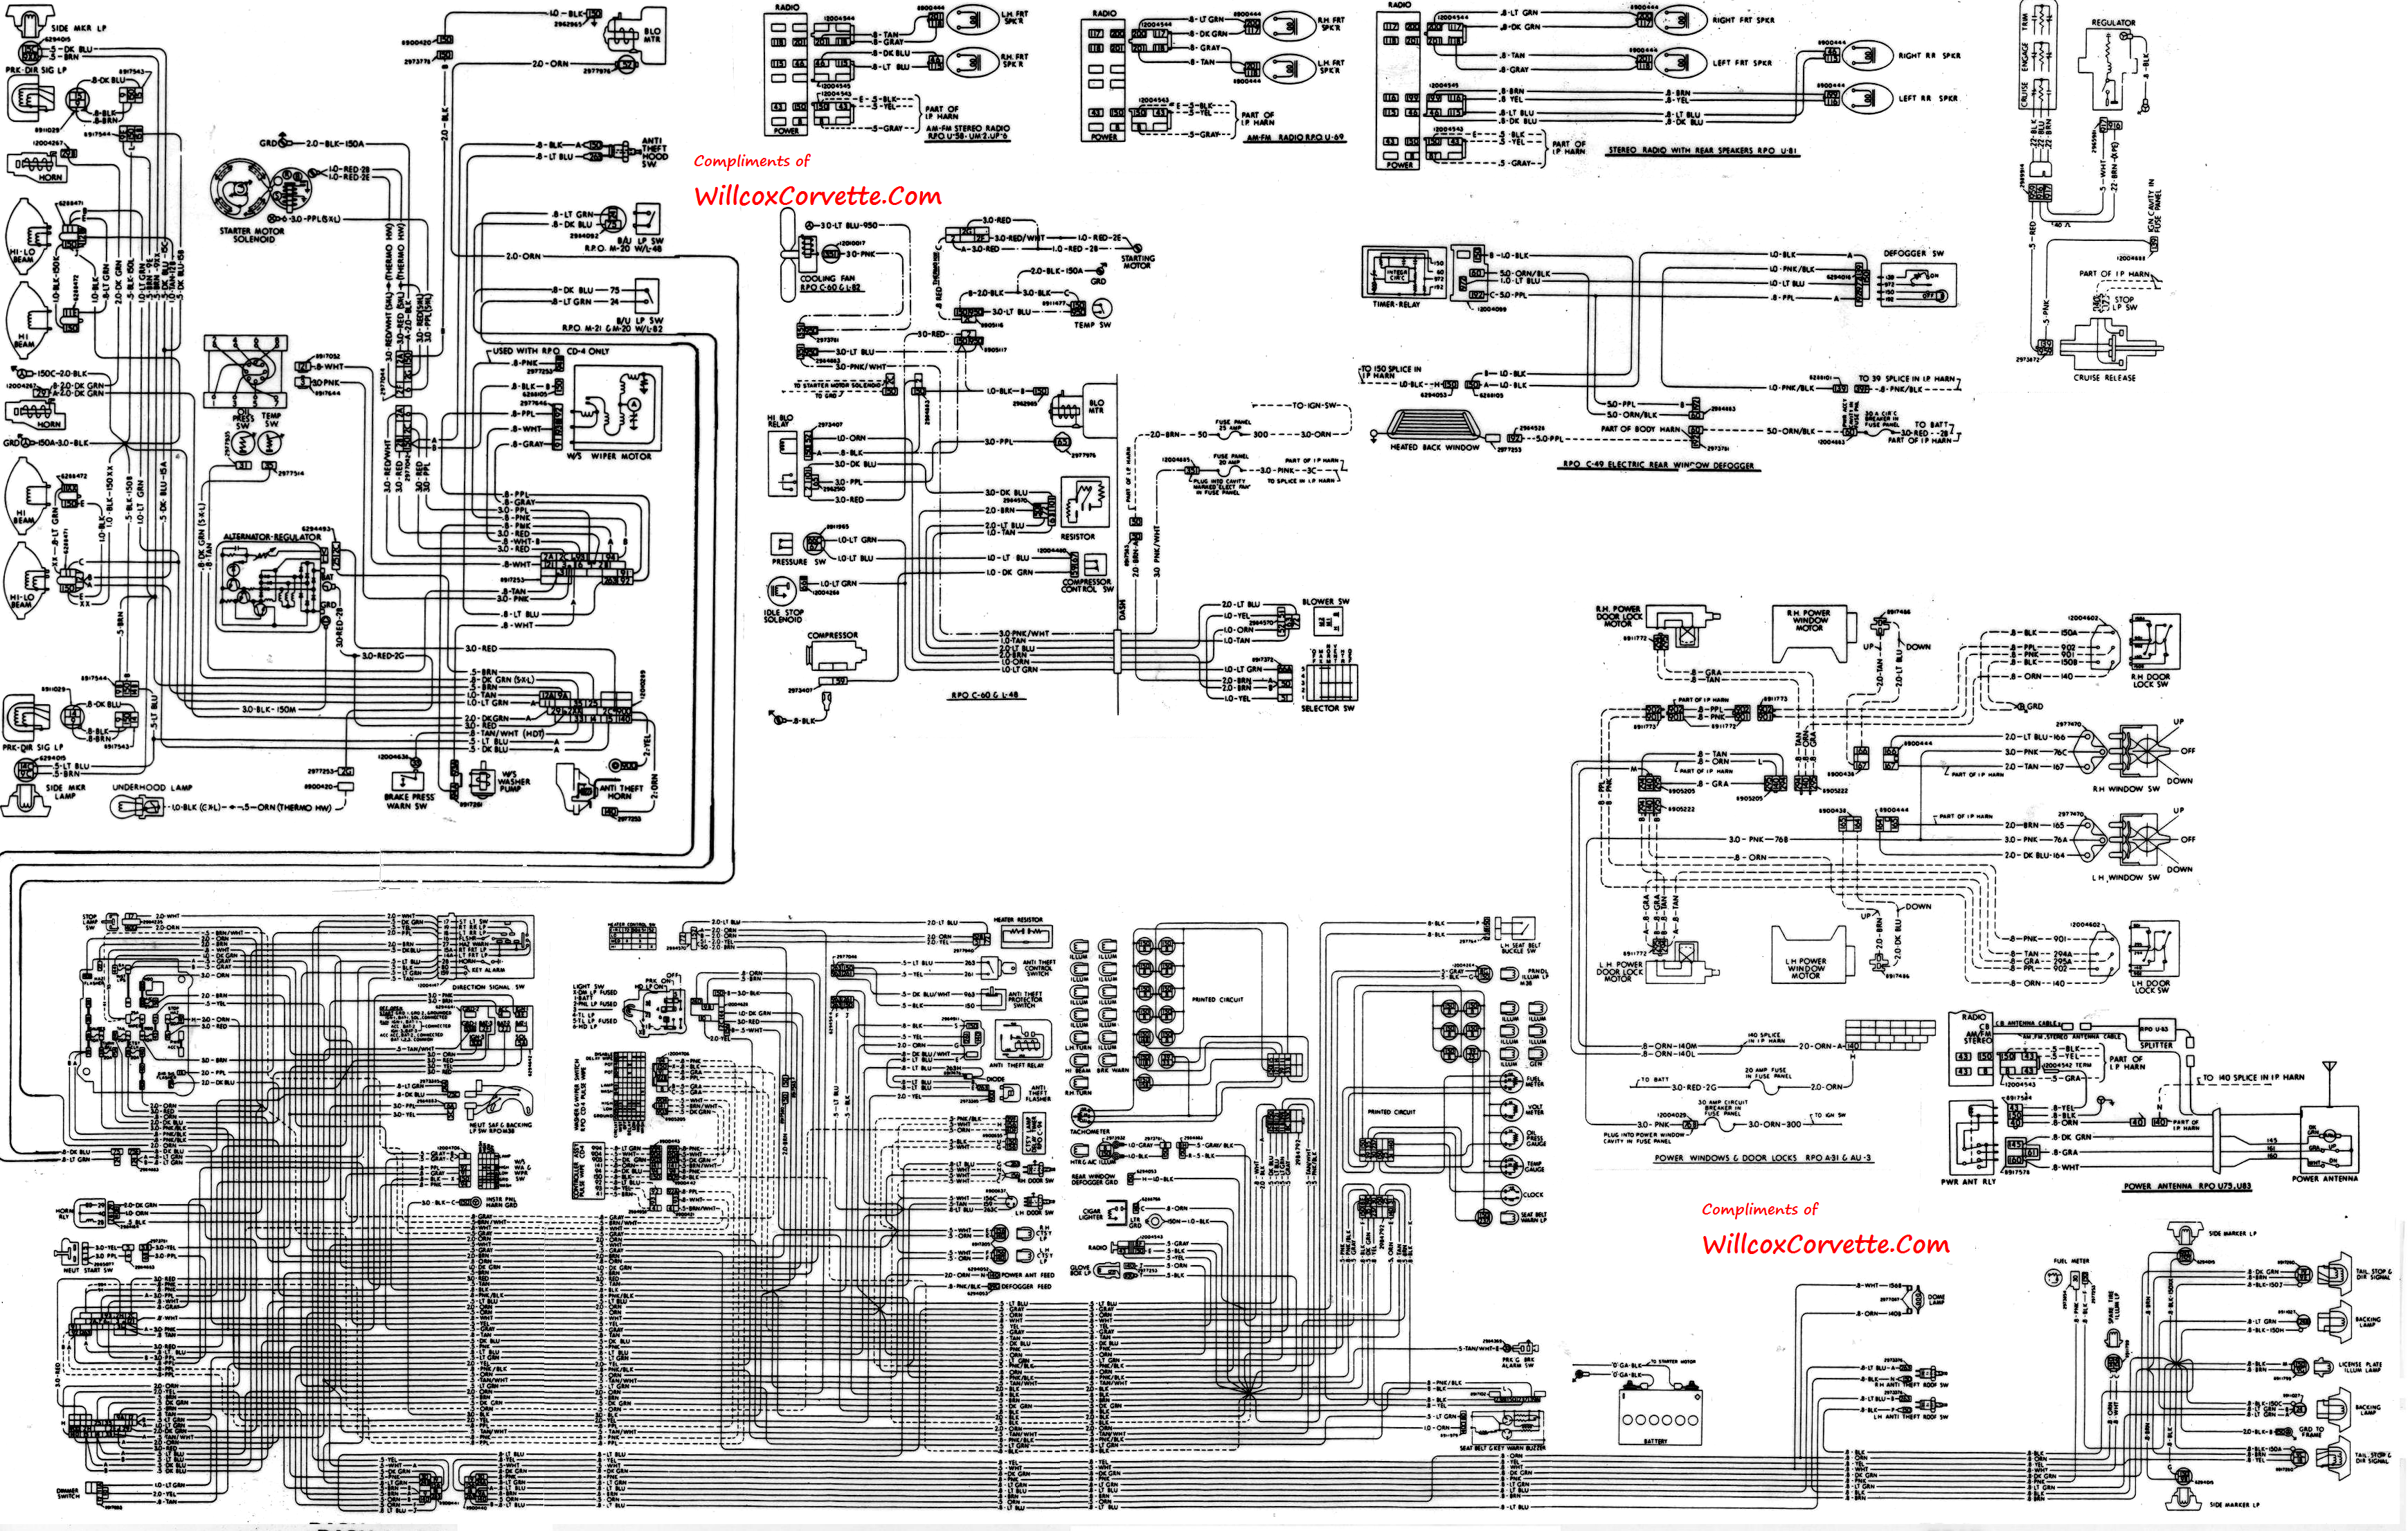 1979 wire diagram 1979 corvette tracer wiring diagram tracer schematic willcox 1985 corvette wiring diagram at gsmx.co